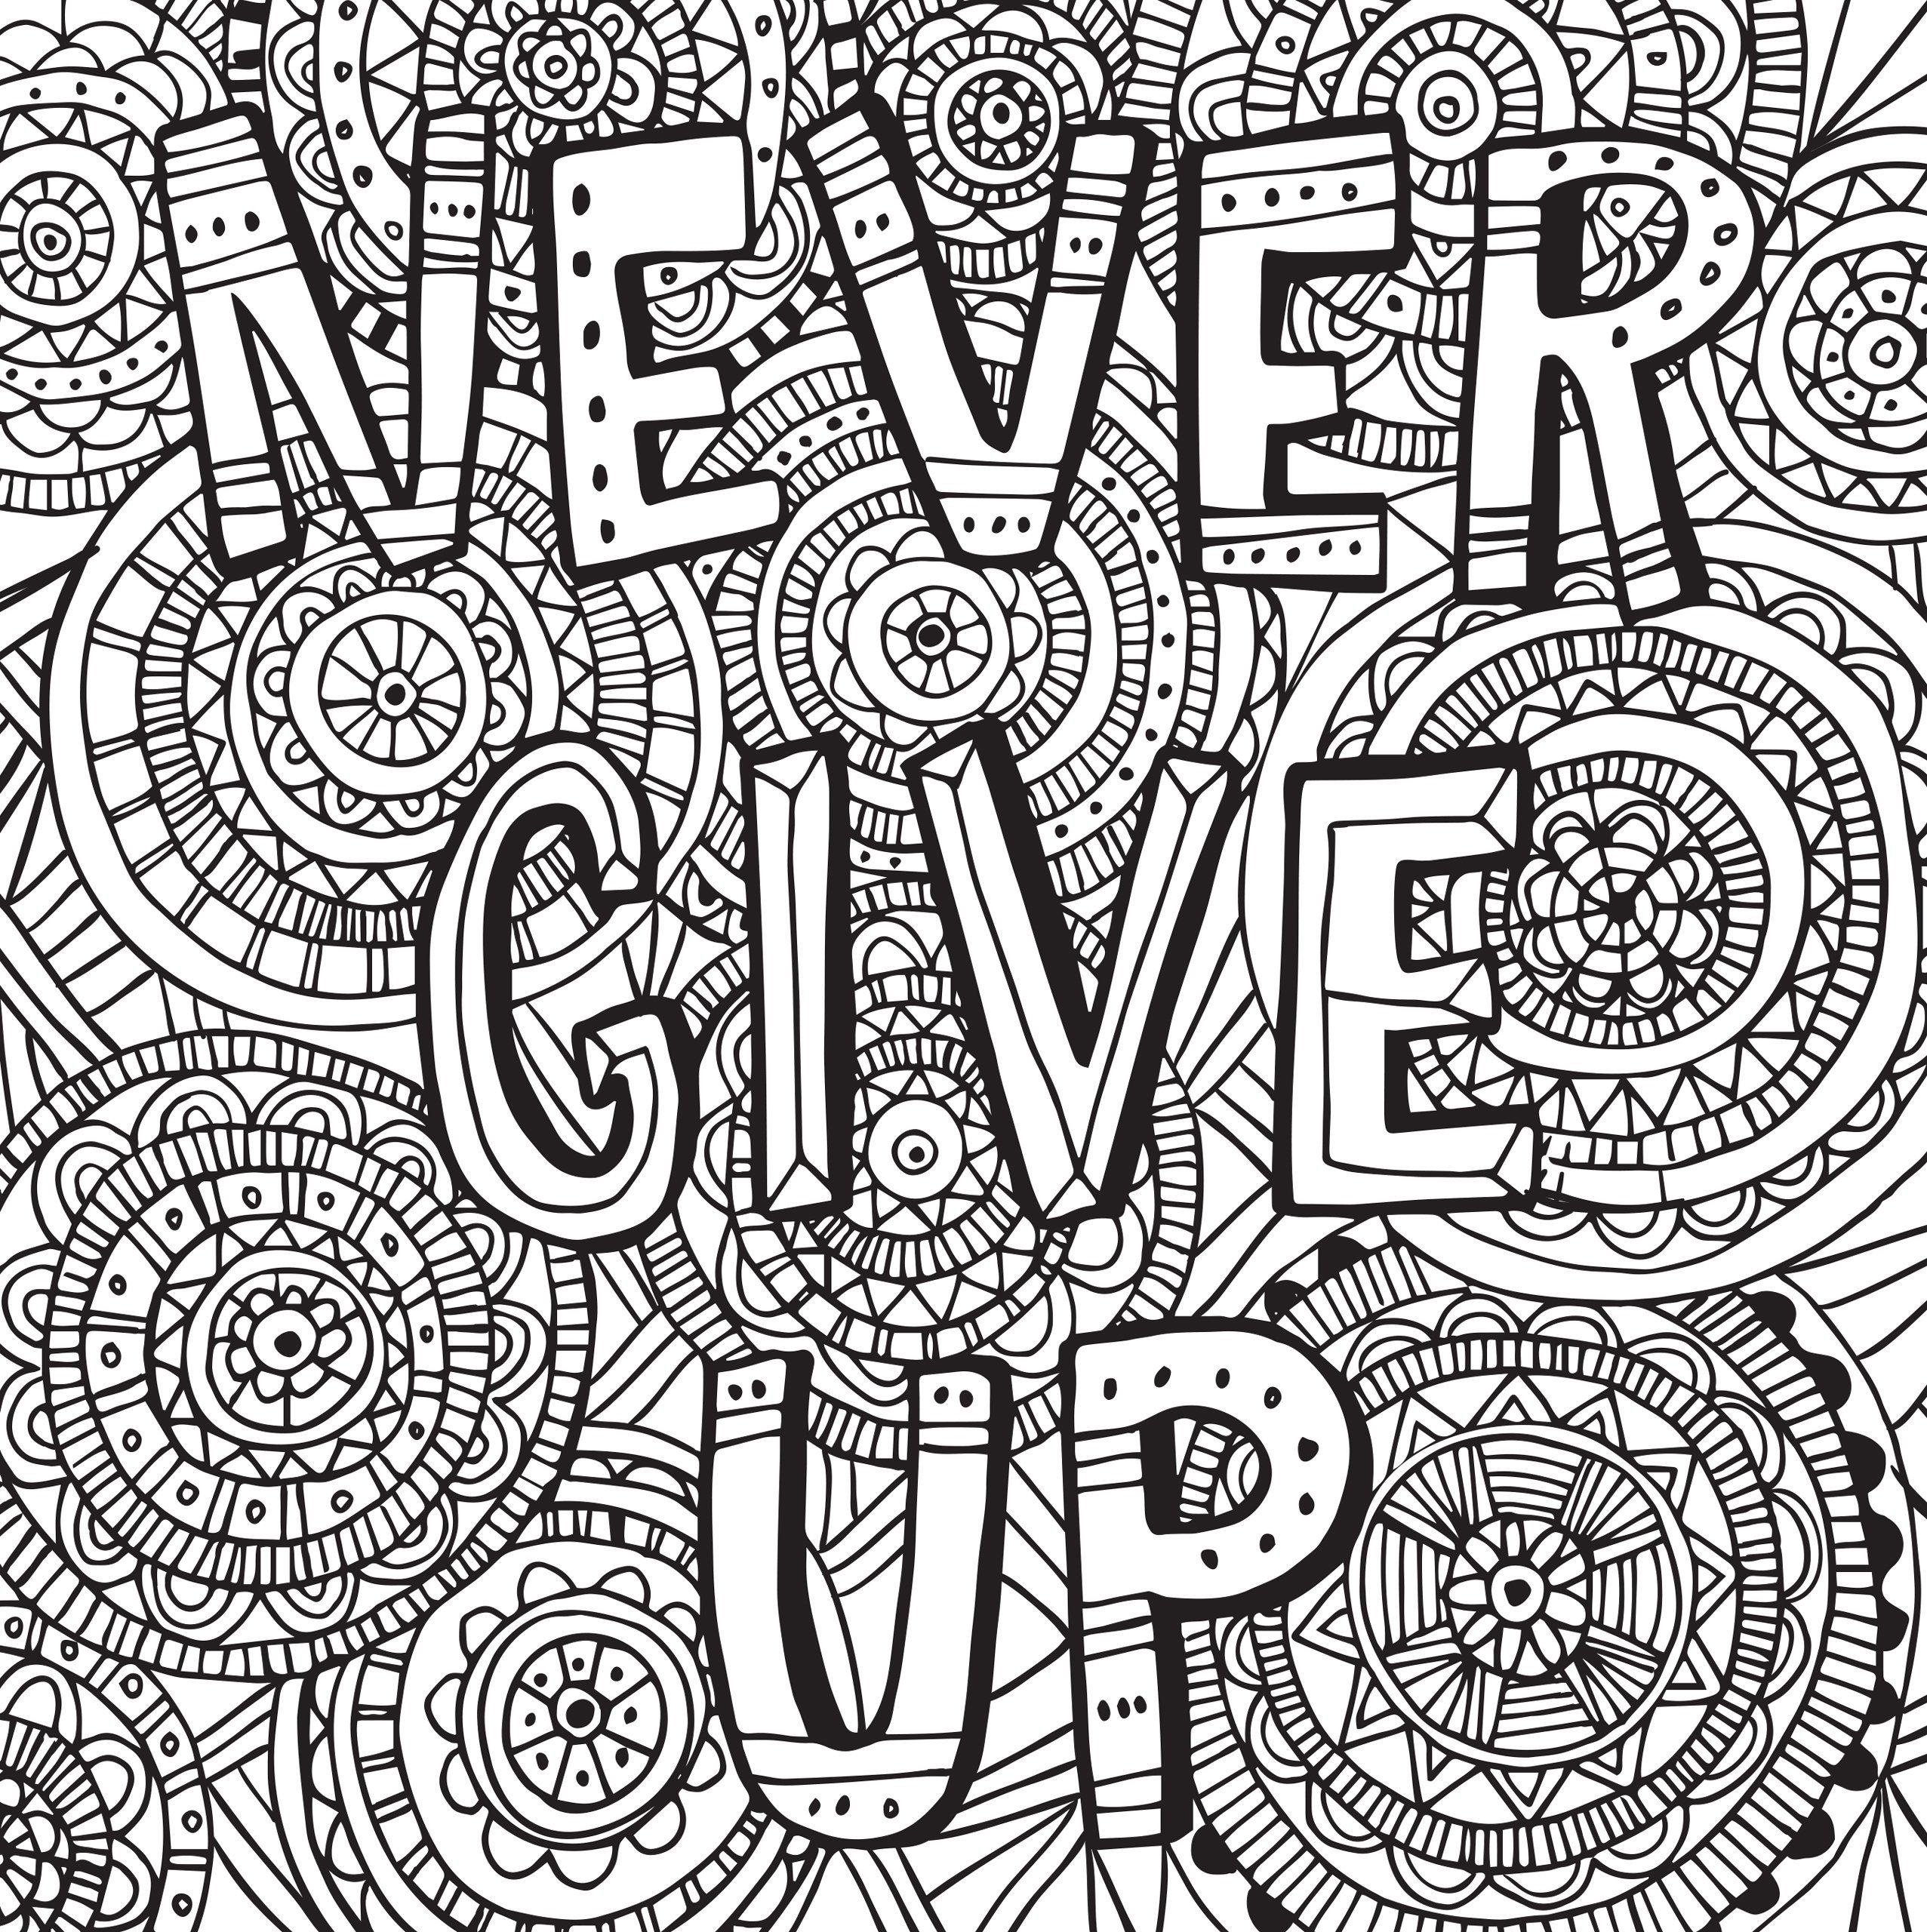 Awesome Quote Coloring Pages Inspiration Graphic Free ...